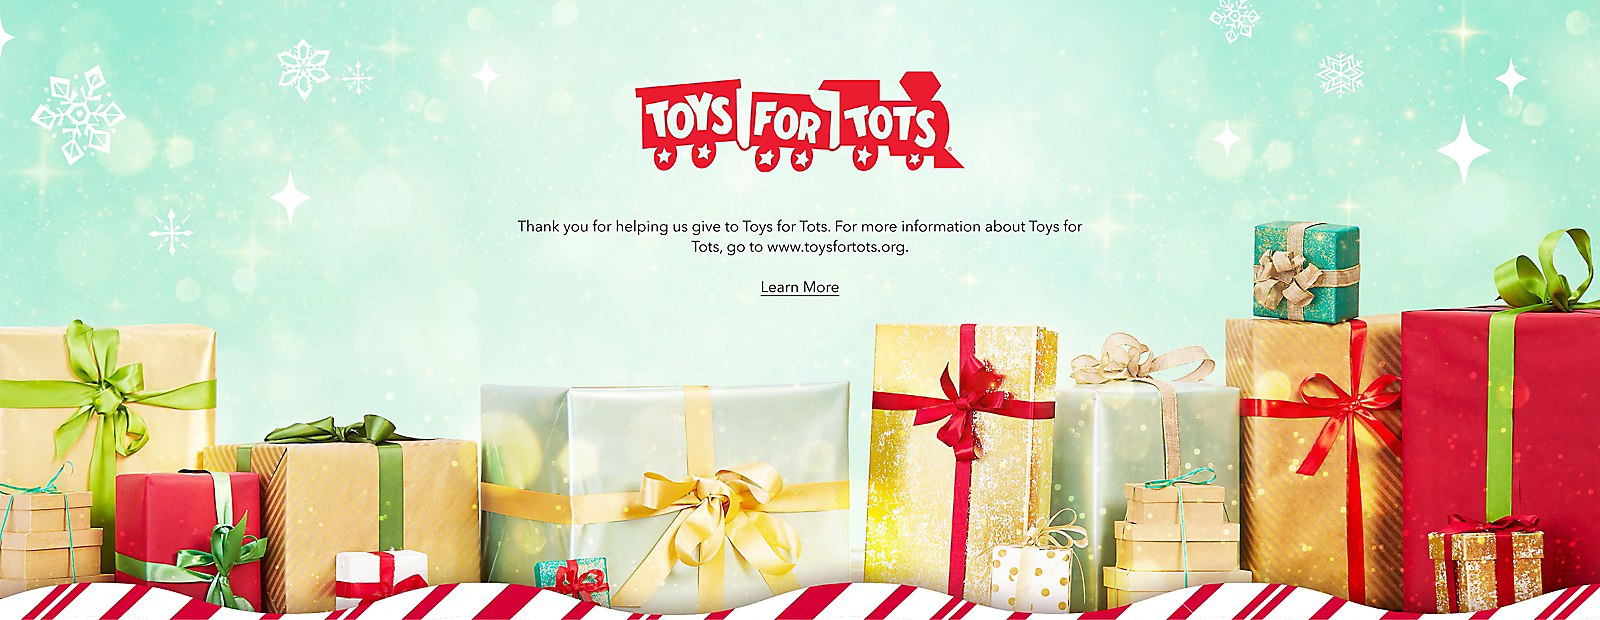 Thank you for helping us give to Toys for Tots. For more information about Toys for Tots, go to www.toysfortots.org. Learn More